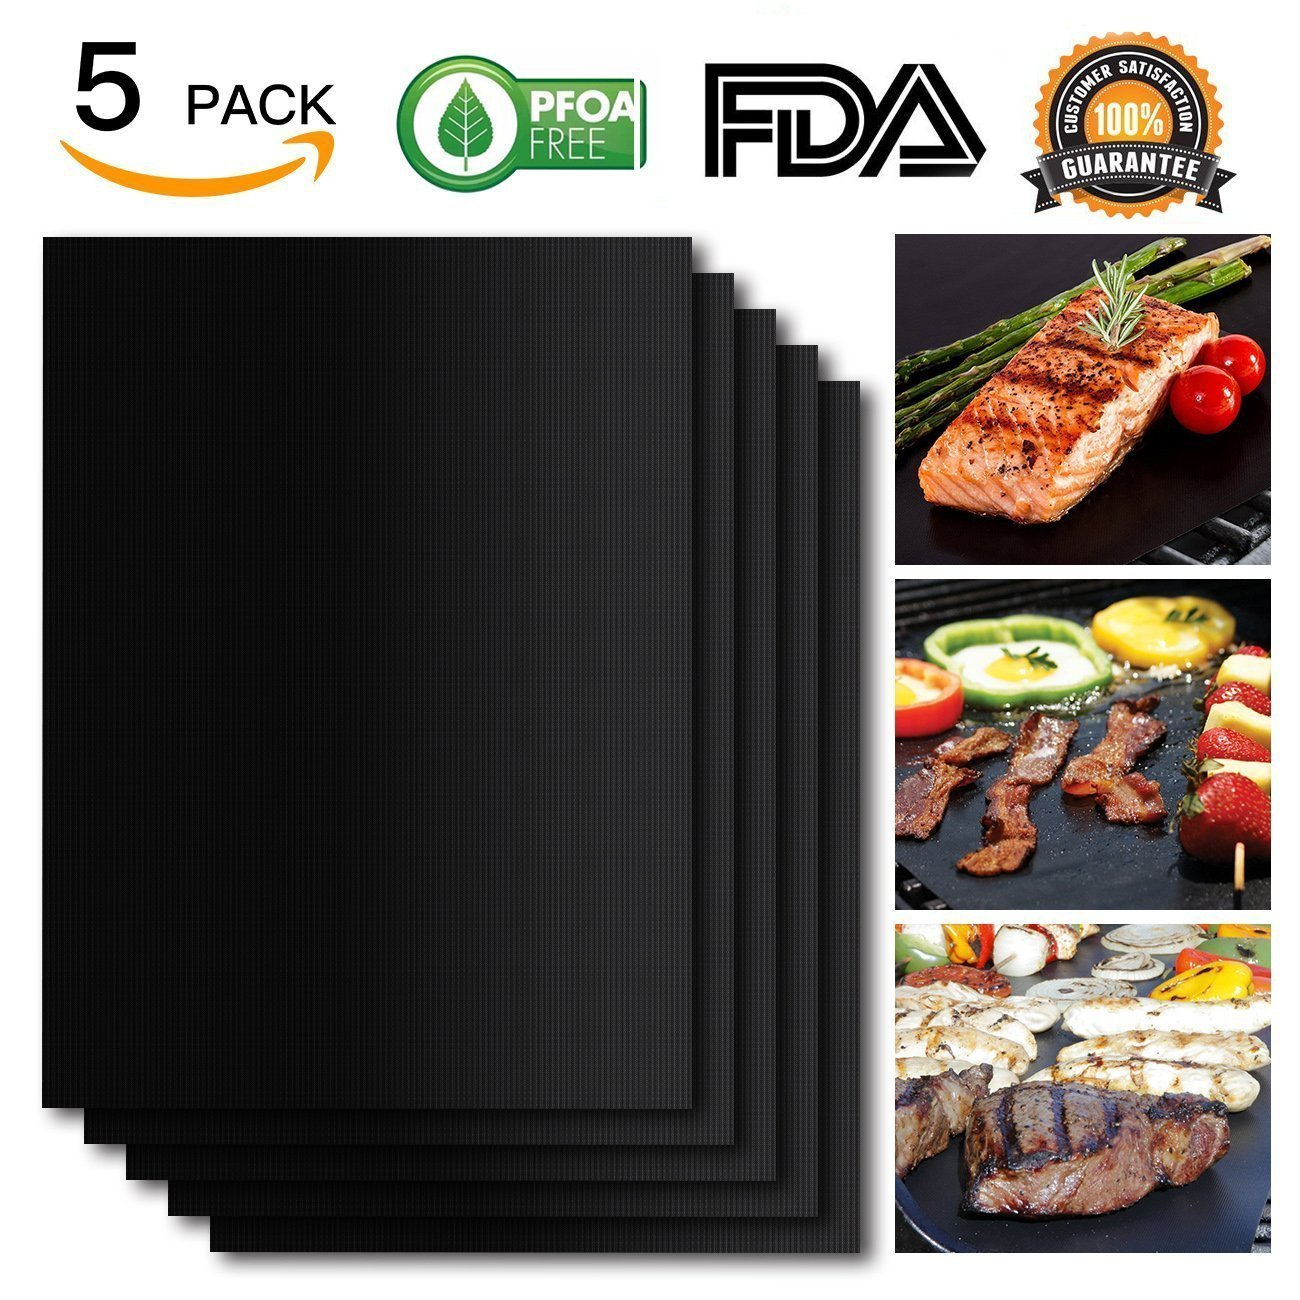 Everteco Grill Mat Set of 5- 100% Non-stick BBQ Grill & Baking Mat Pad - FDA-Approved, PFOA Free, Reusable and Easy to Clean - Works on Gas, Charcoal, Electric Grill and More - 15.75 x 13 Inch